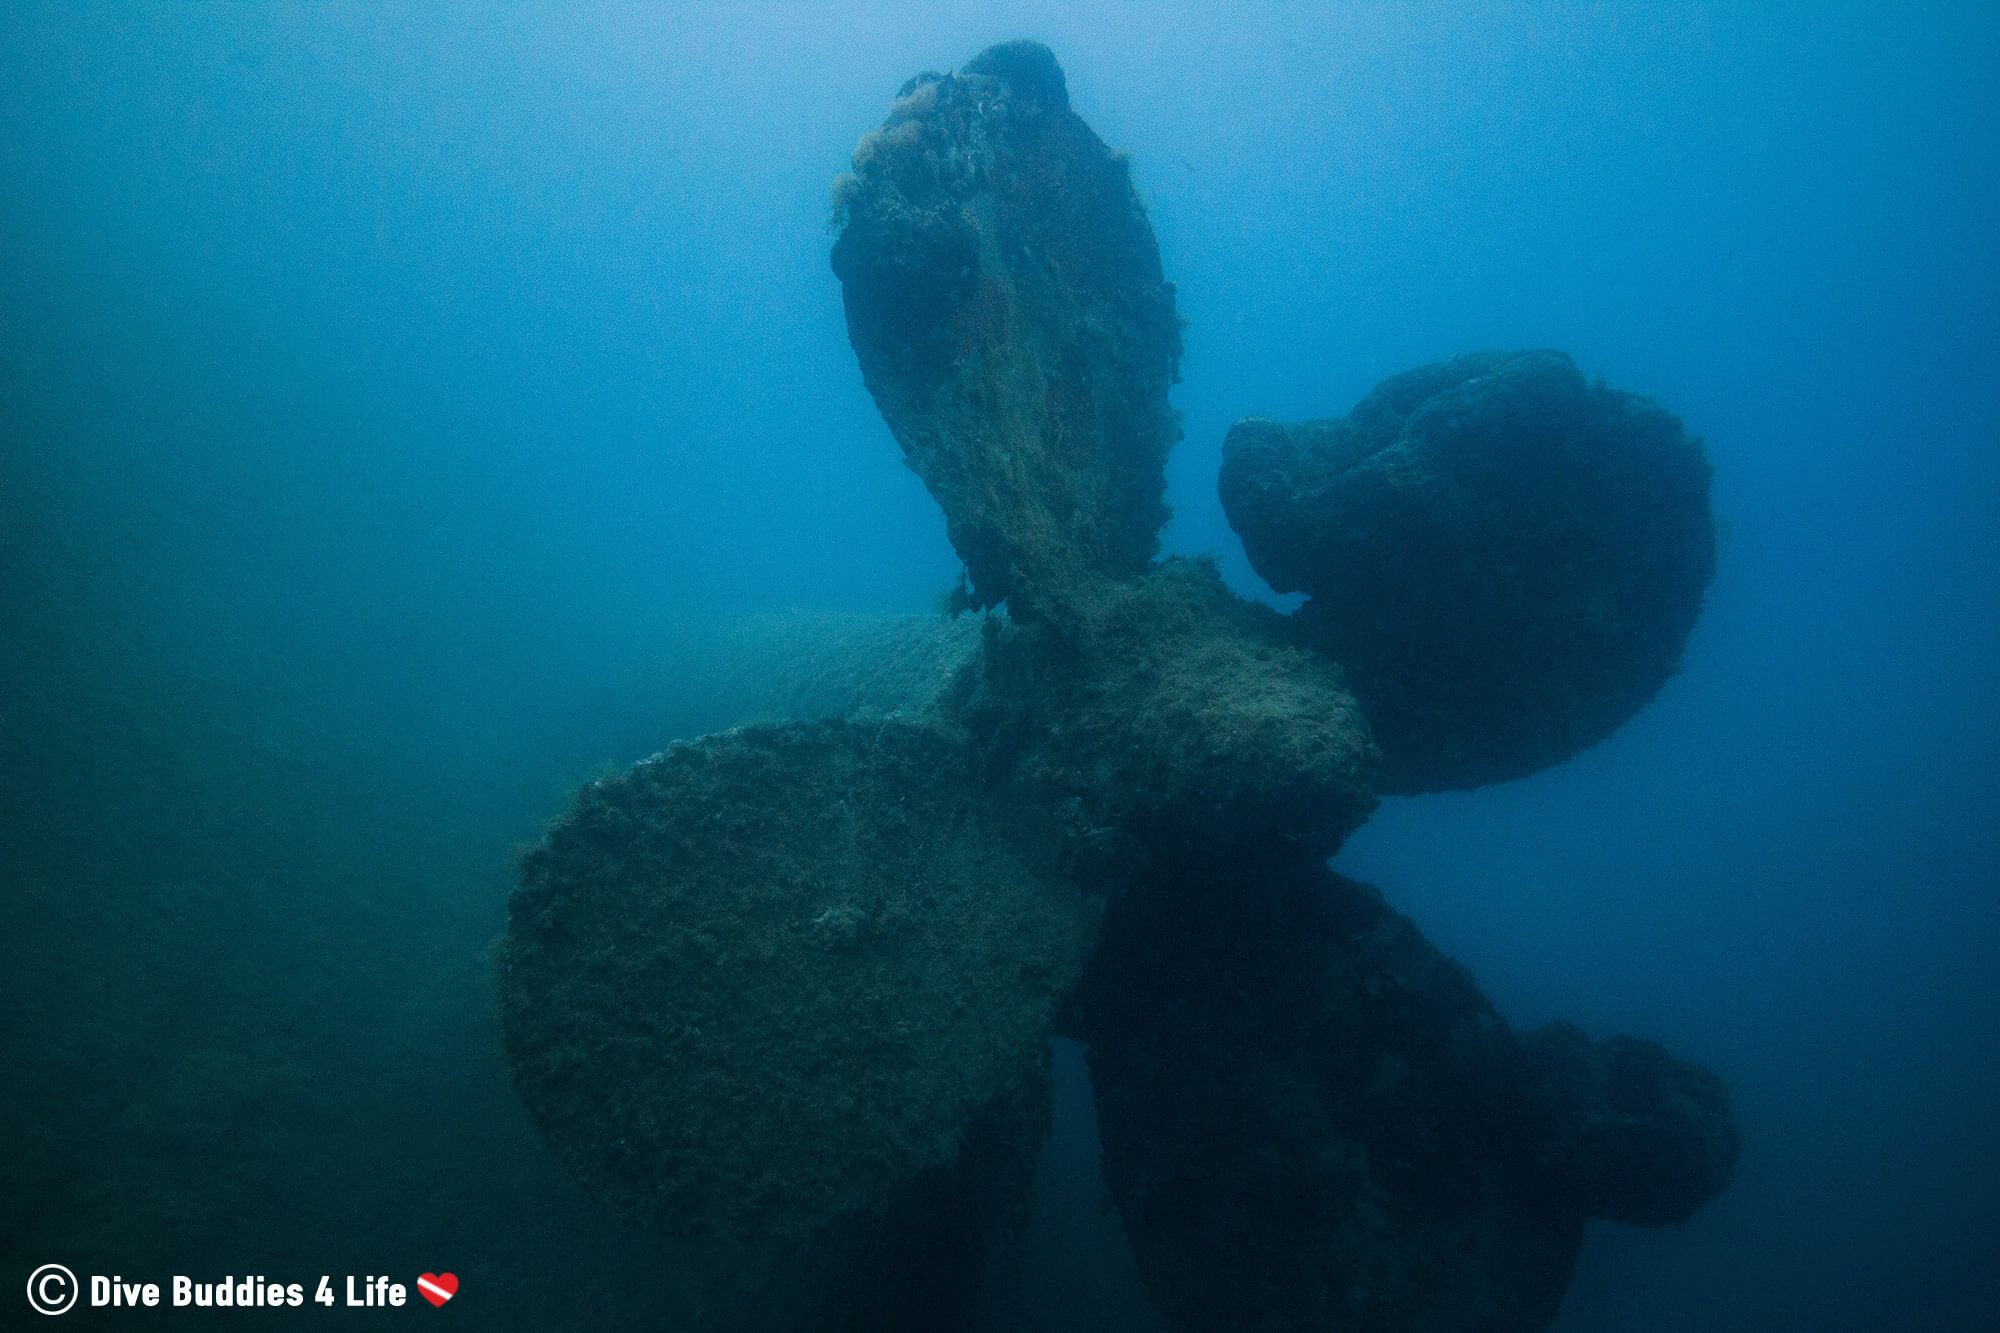 Scuba Diving A Large Shipwreck Propeller In Albania, Eastern Europe